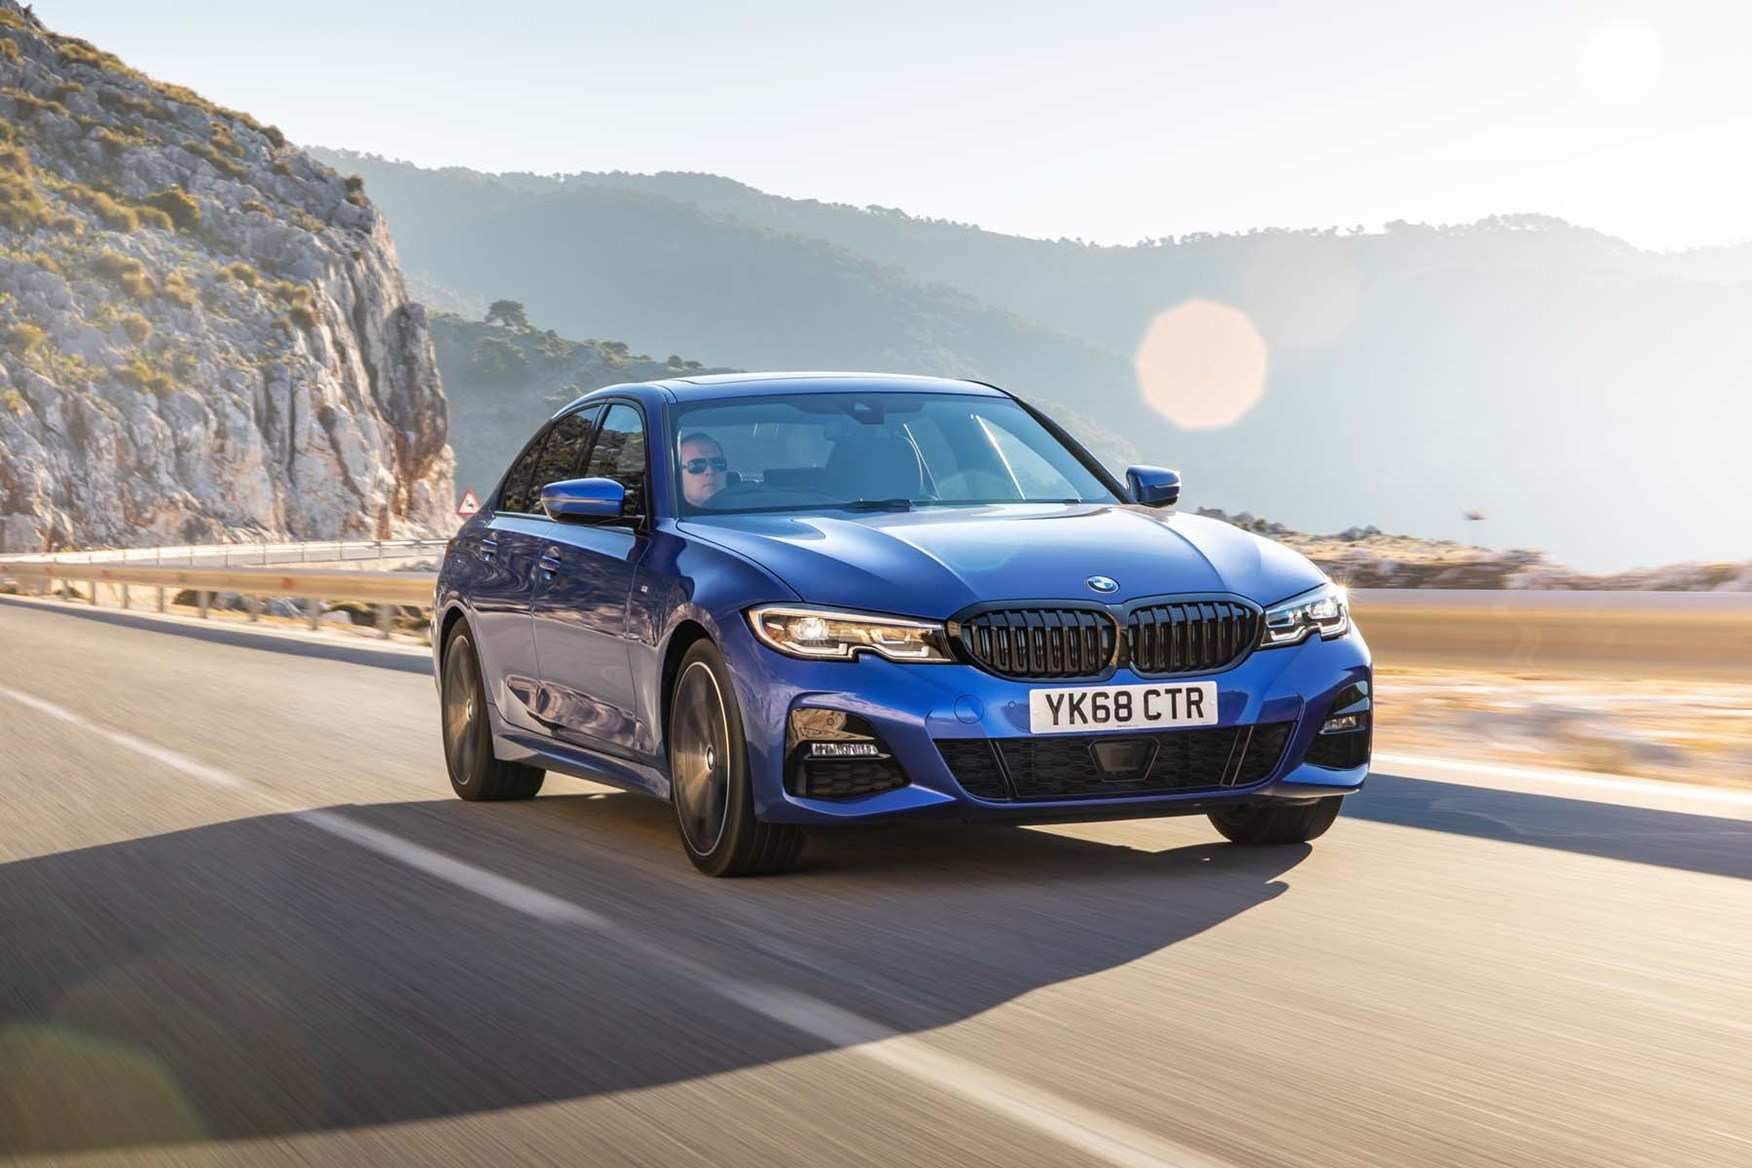 28 All New 2020 BMW 3 Series Edrive Phev First Drive